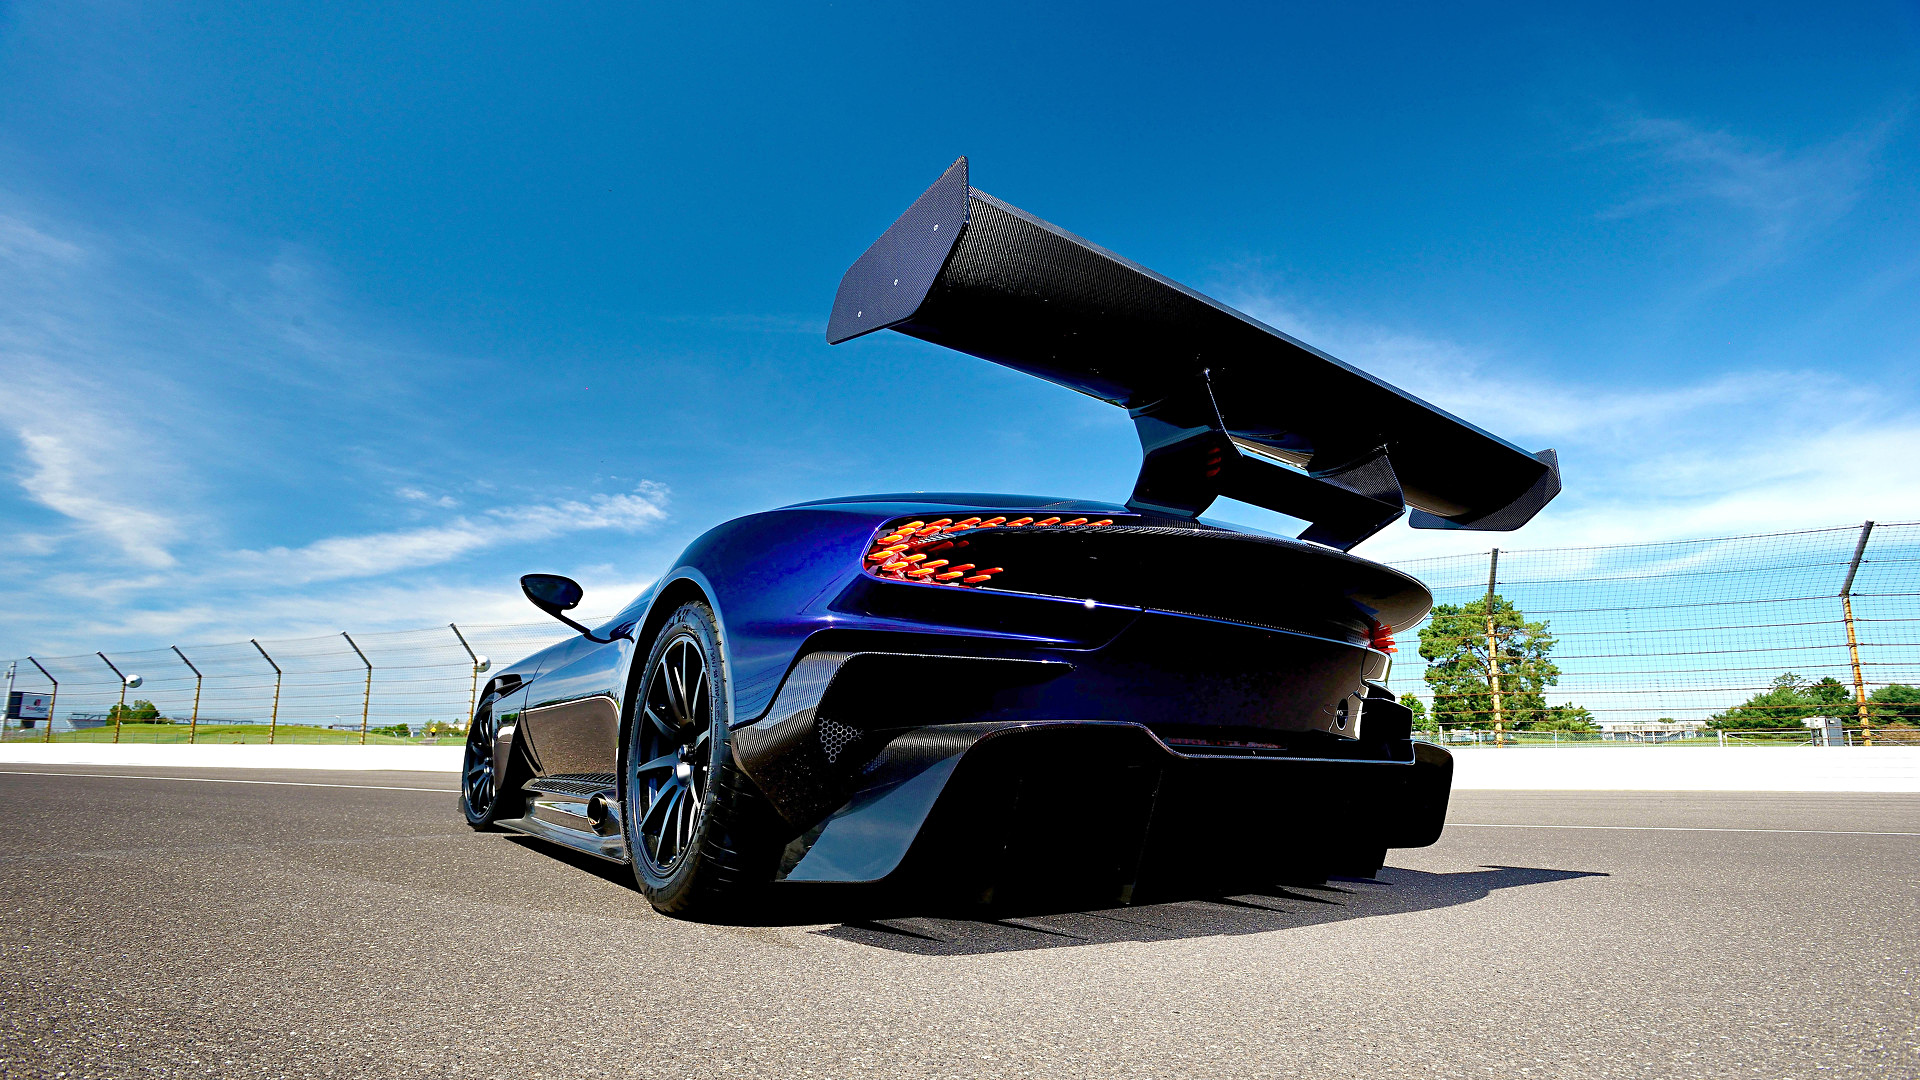 Vehicles - Aston Martin Vulcan  Race Car Aston Martin Supercar Wallpaper